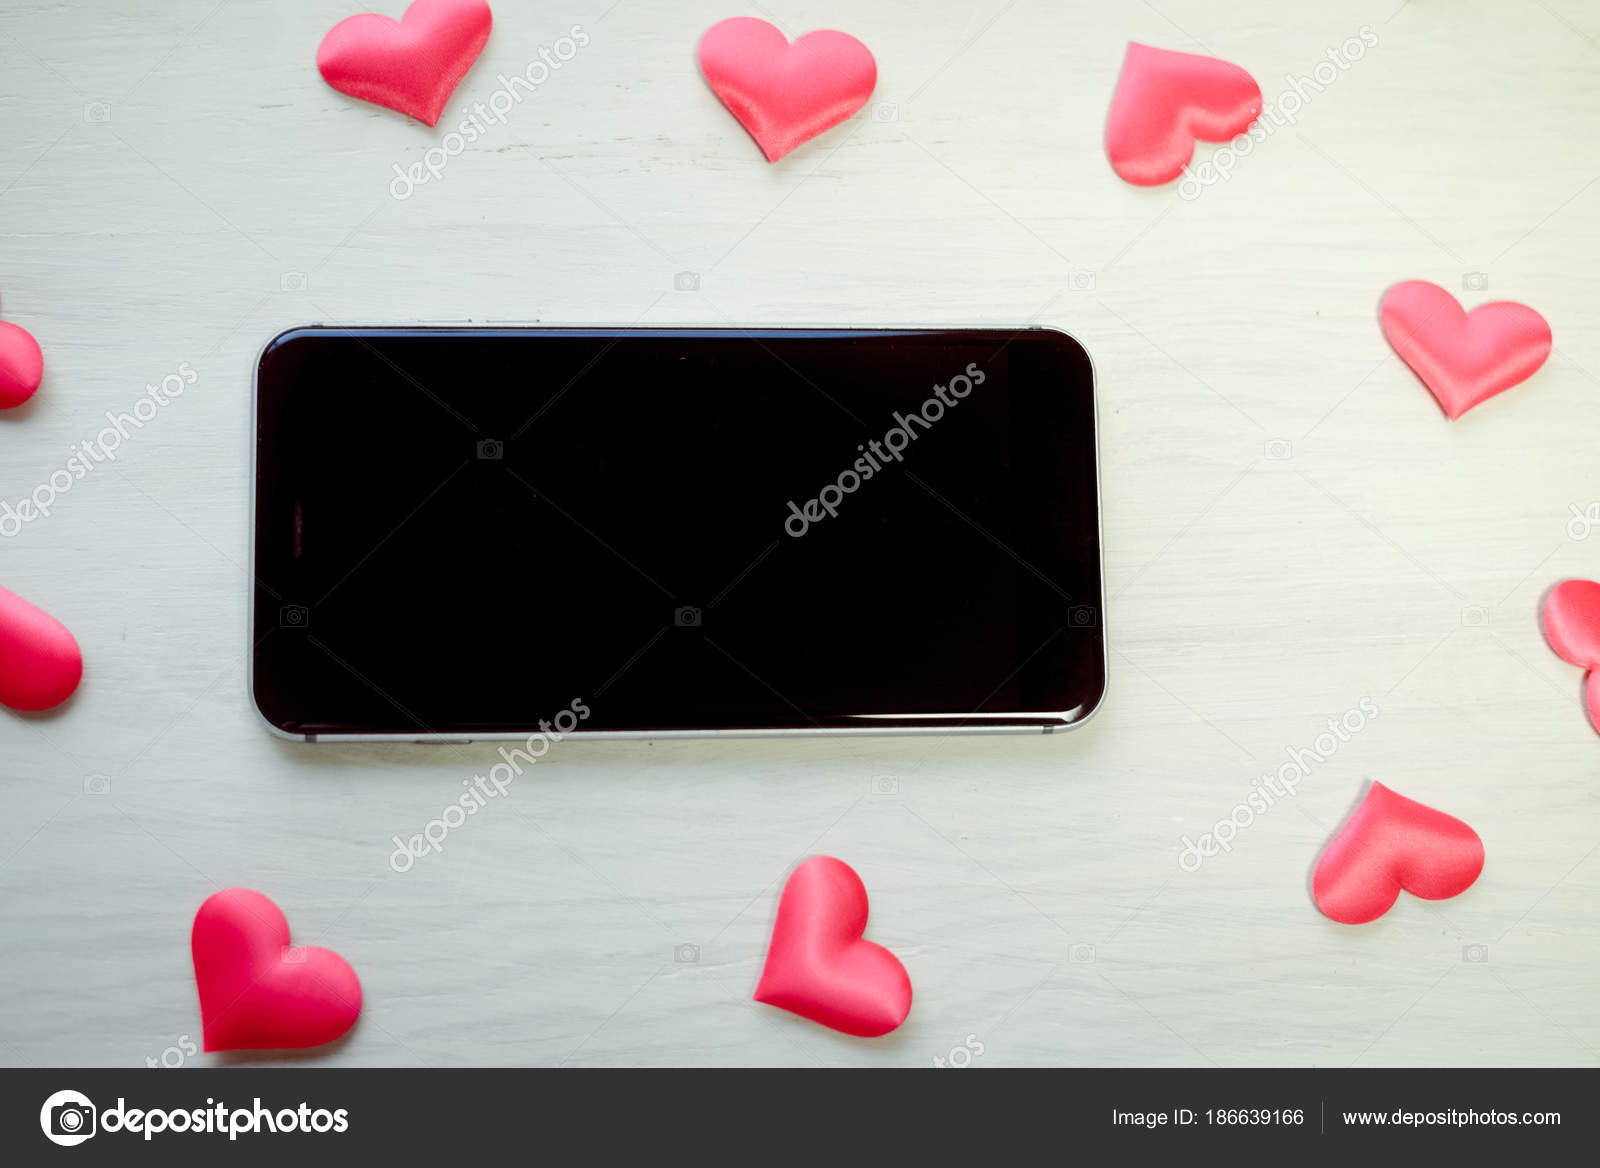 Love Heart Symbol And Mobile Phone Valentine Day Background Design